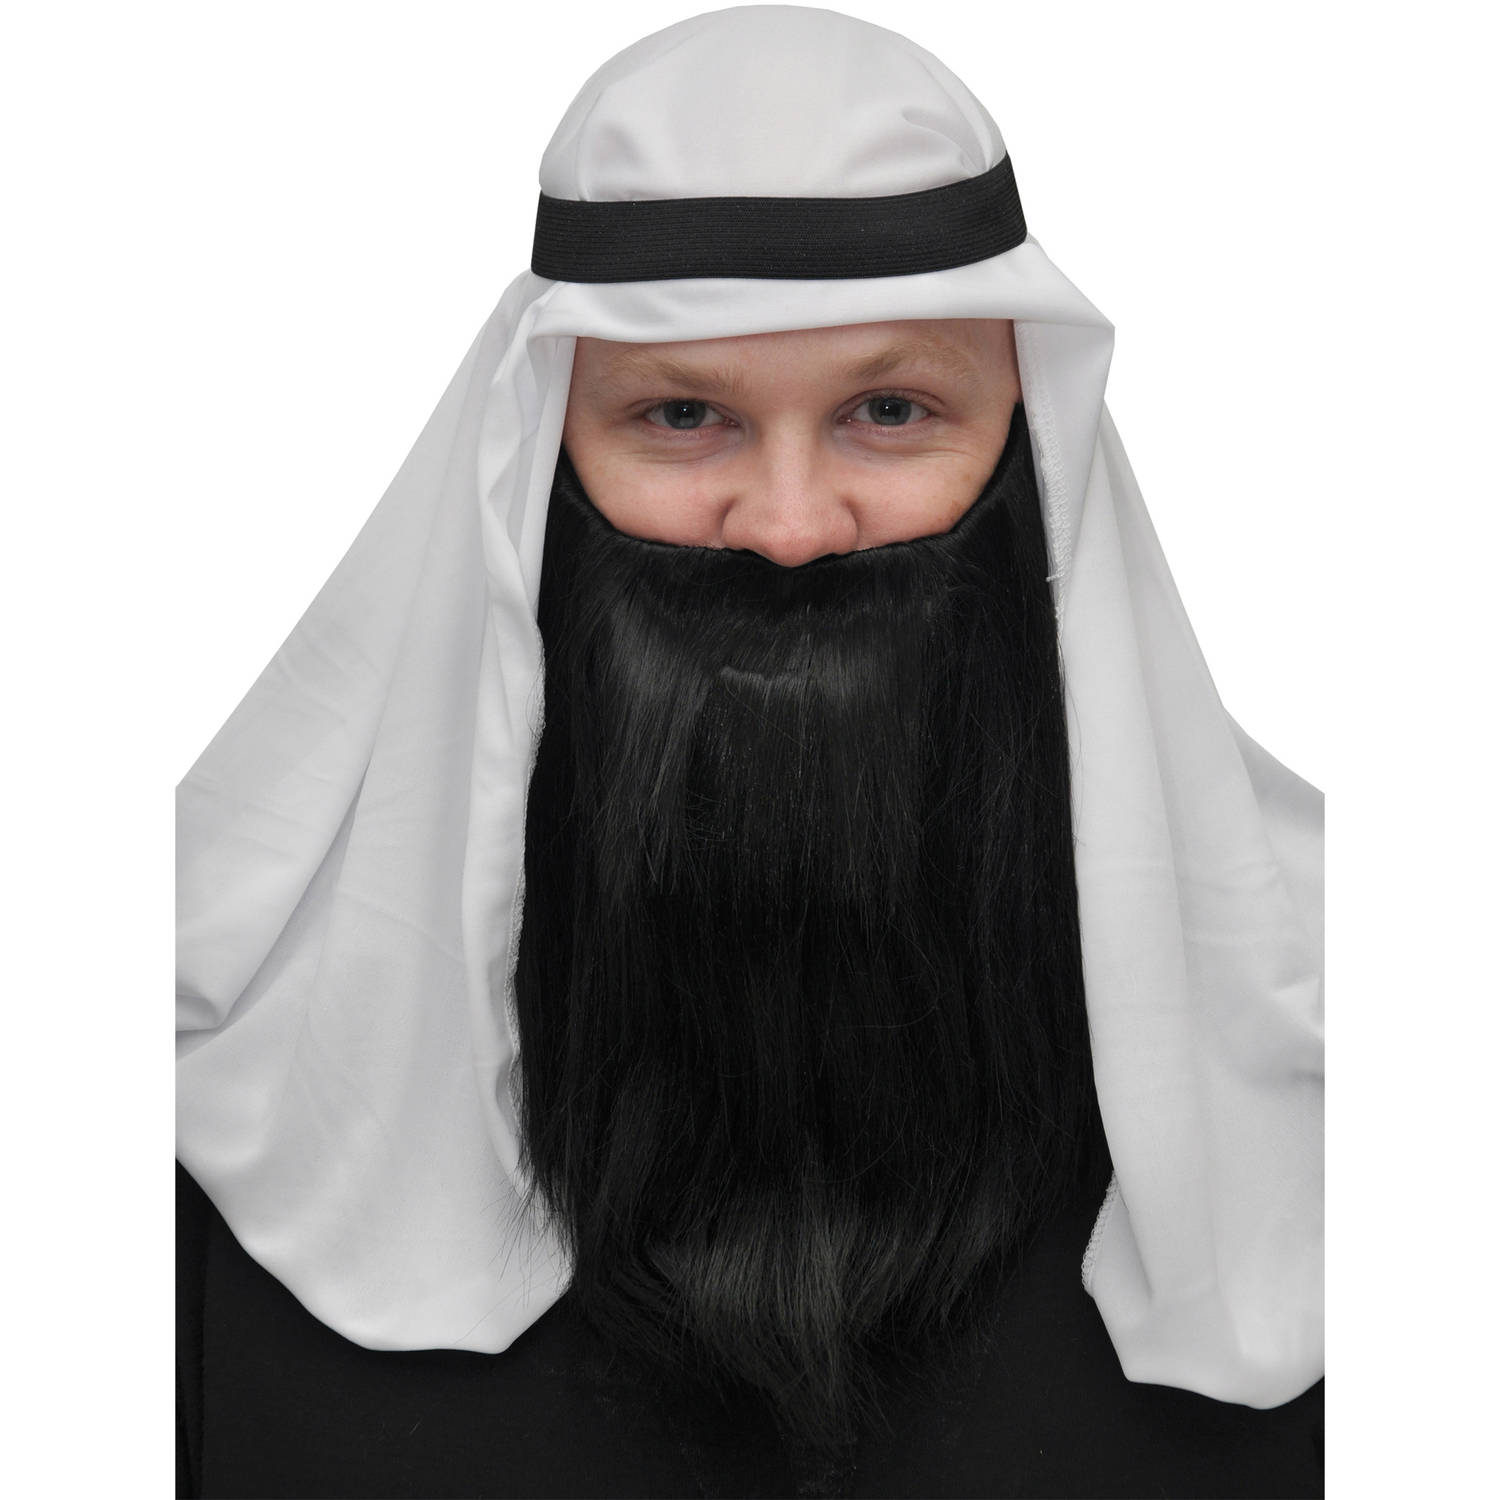 Full Beard and Mustache Adult Halloween Accessory